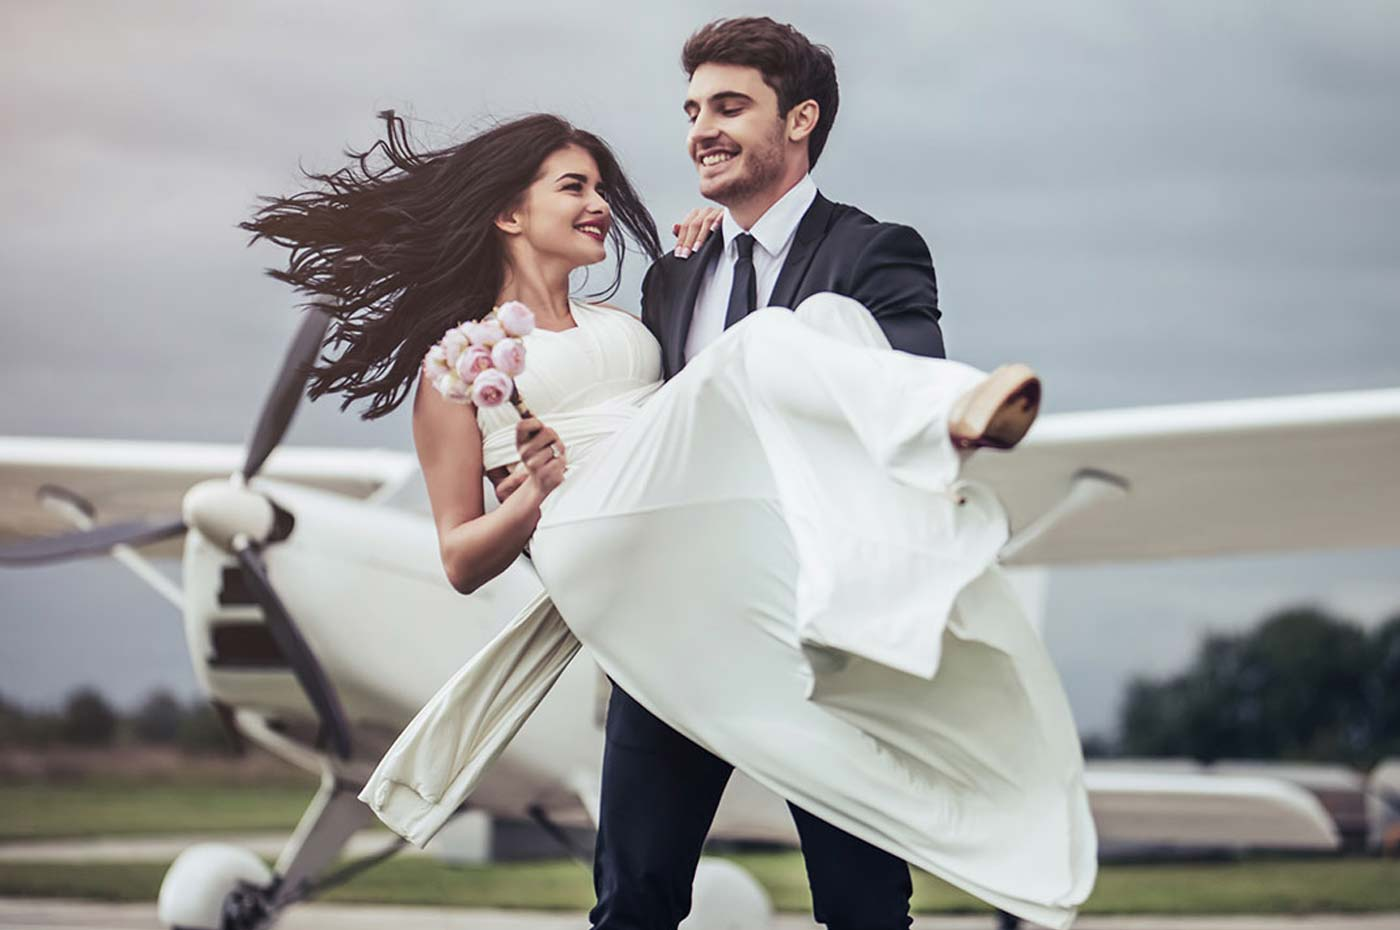 How to Travel on a Plane with a Wedding Dress